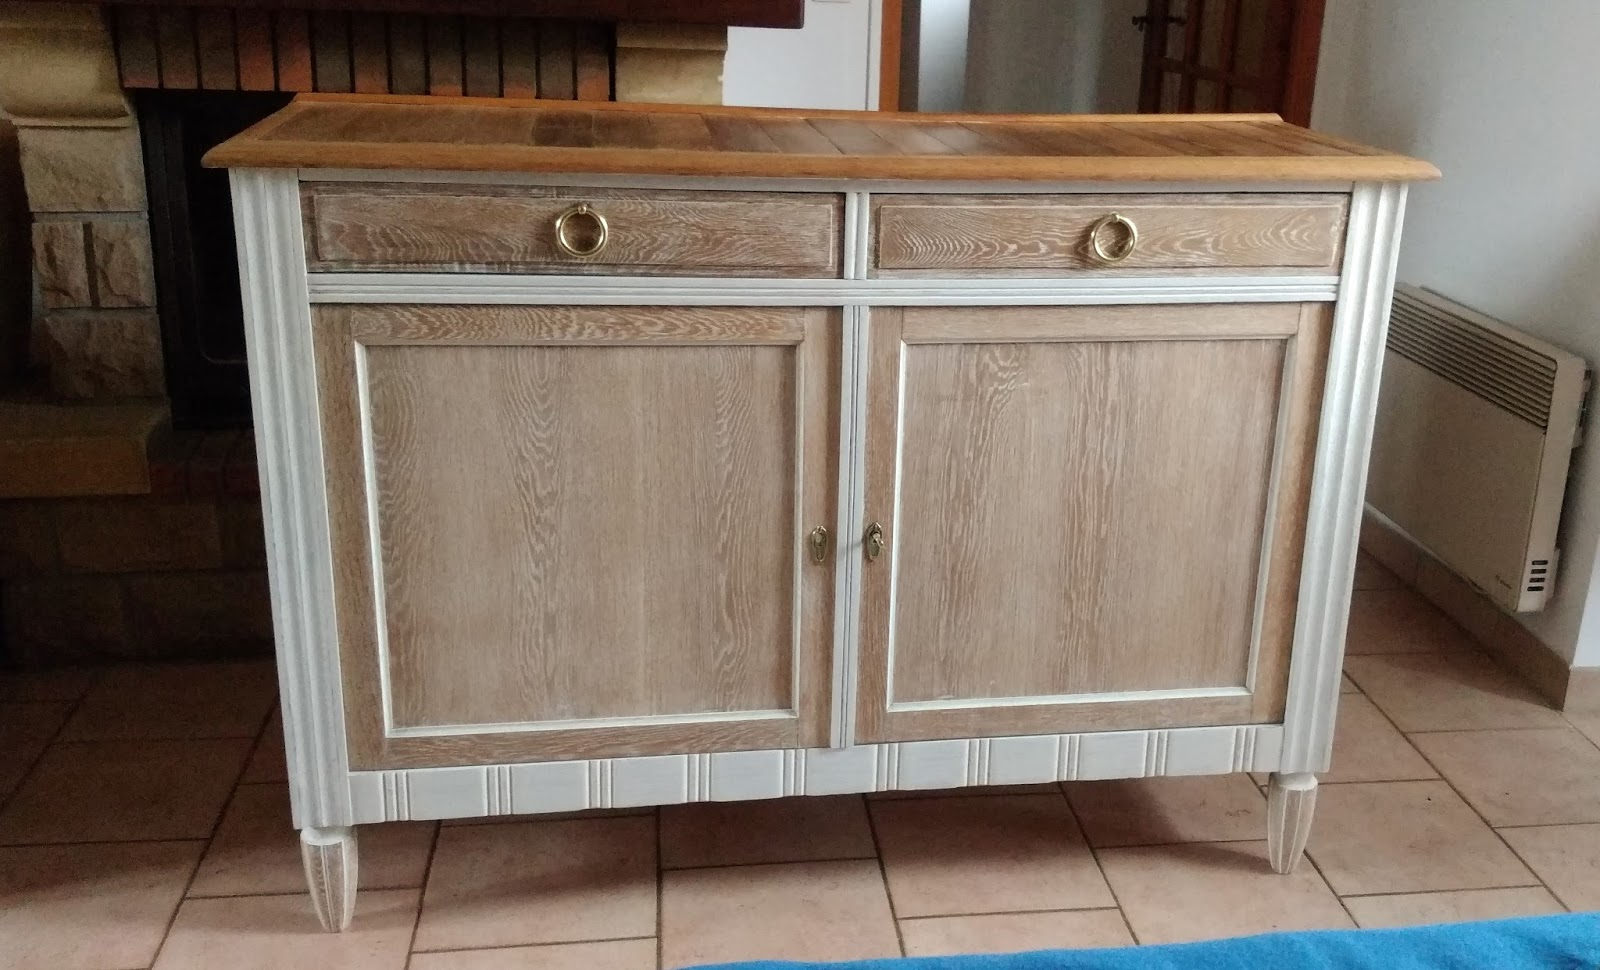 o 39 bois recycl tr s beau buffet ancien en ch ne avec 2 portes et 2 tiroirs. Black Bedroom Furniture Sets. Home Design Ideas